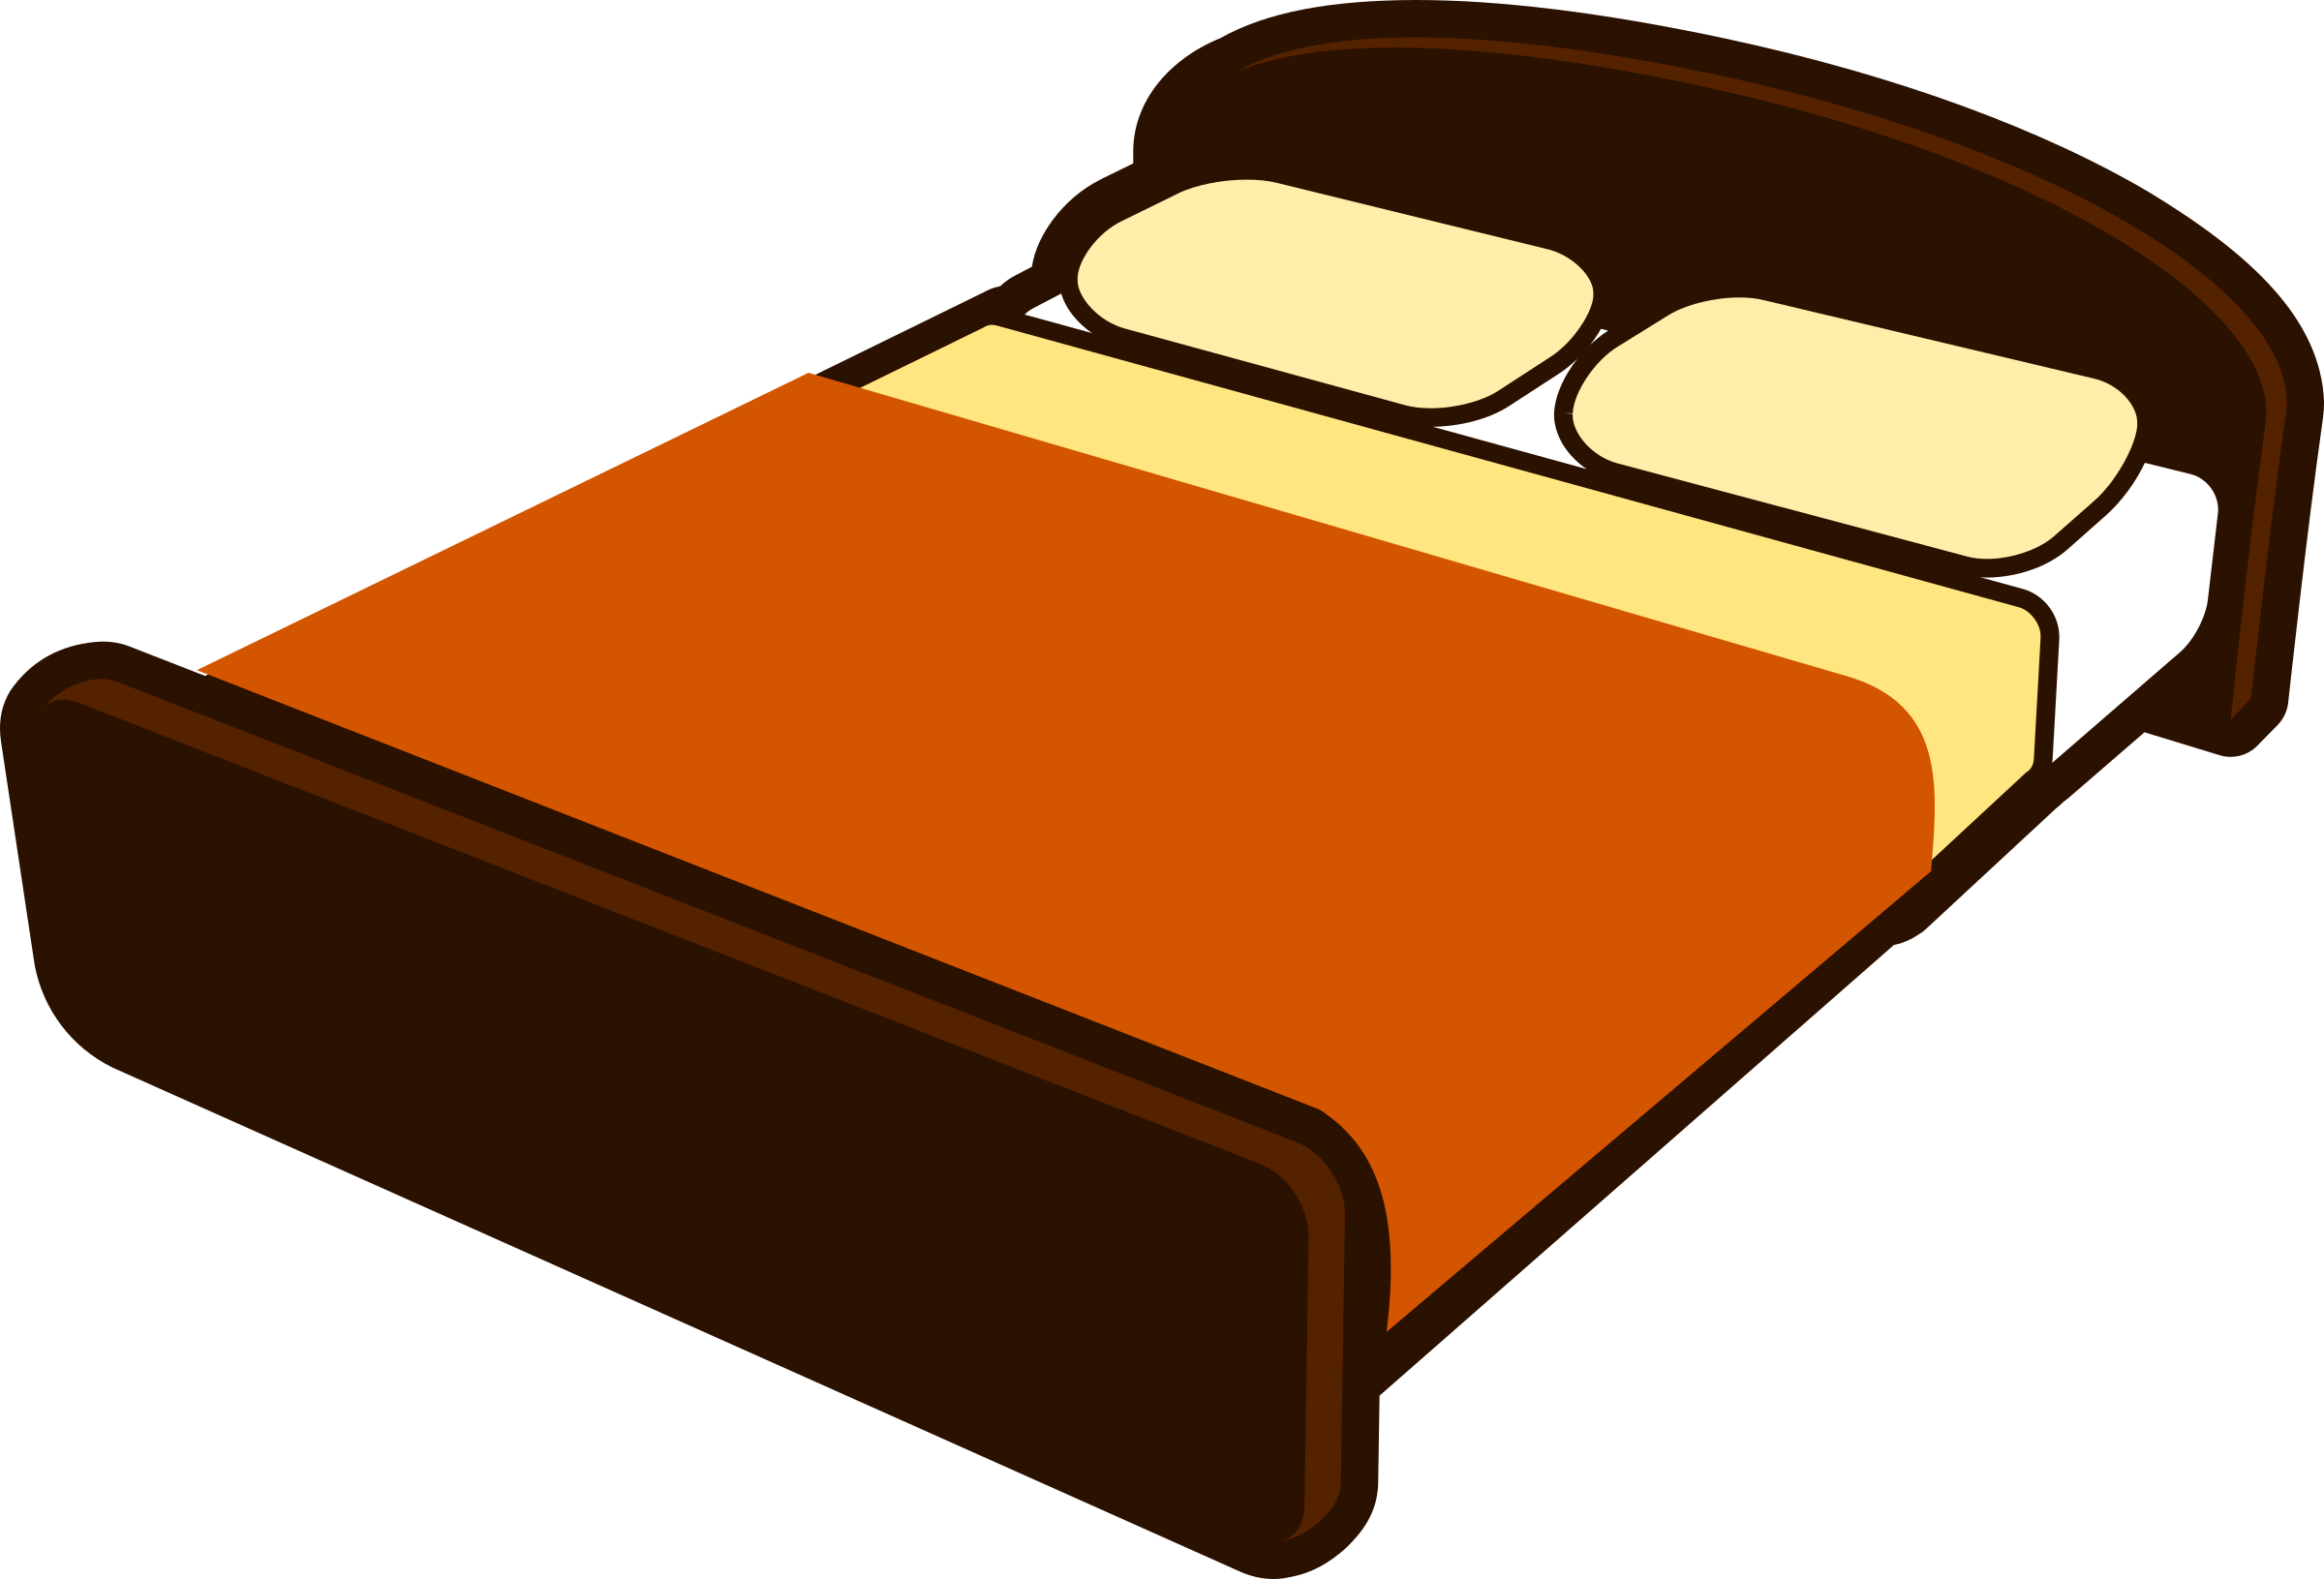 Cartoon bed png. Brown with blanket icons